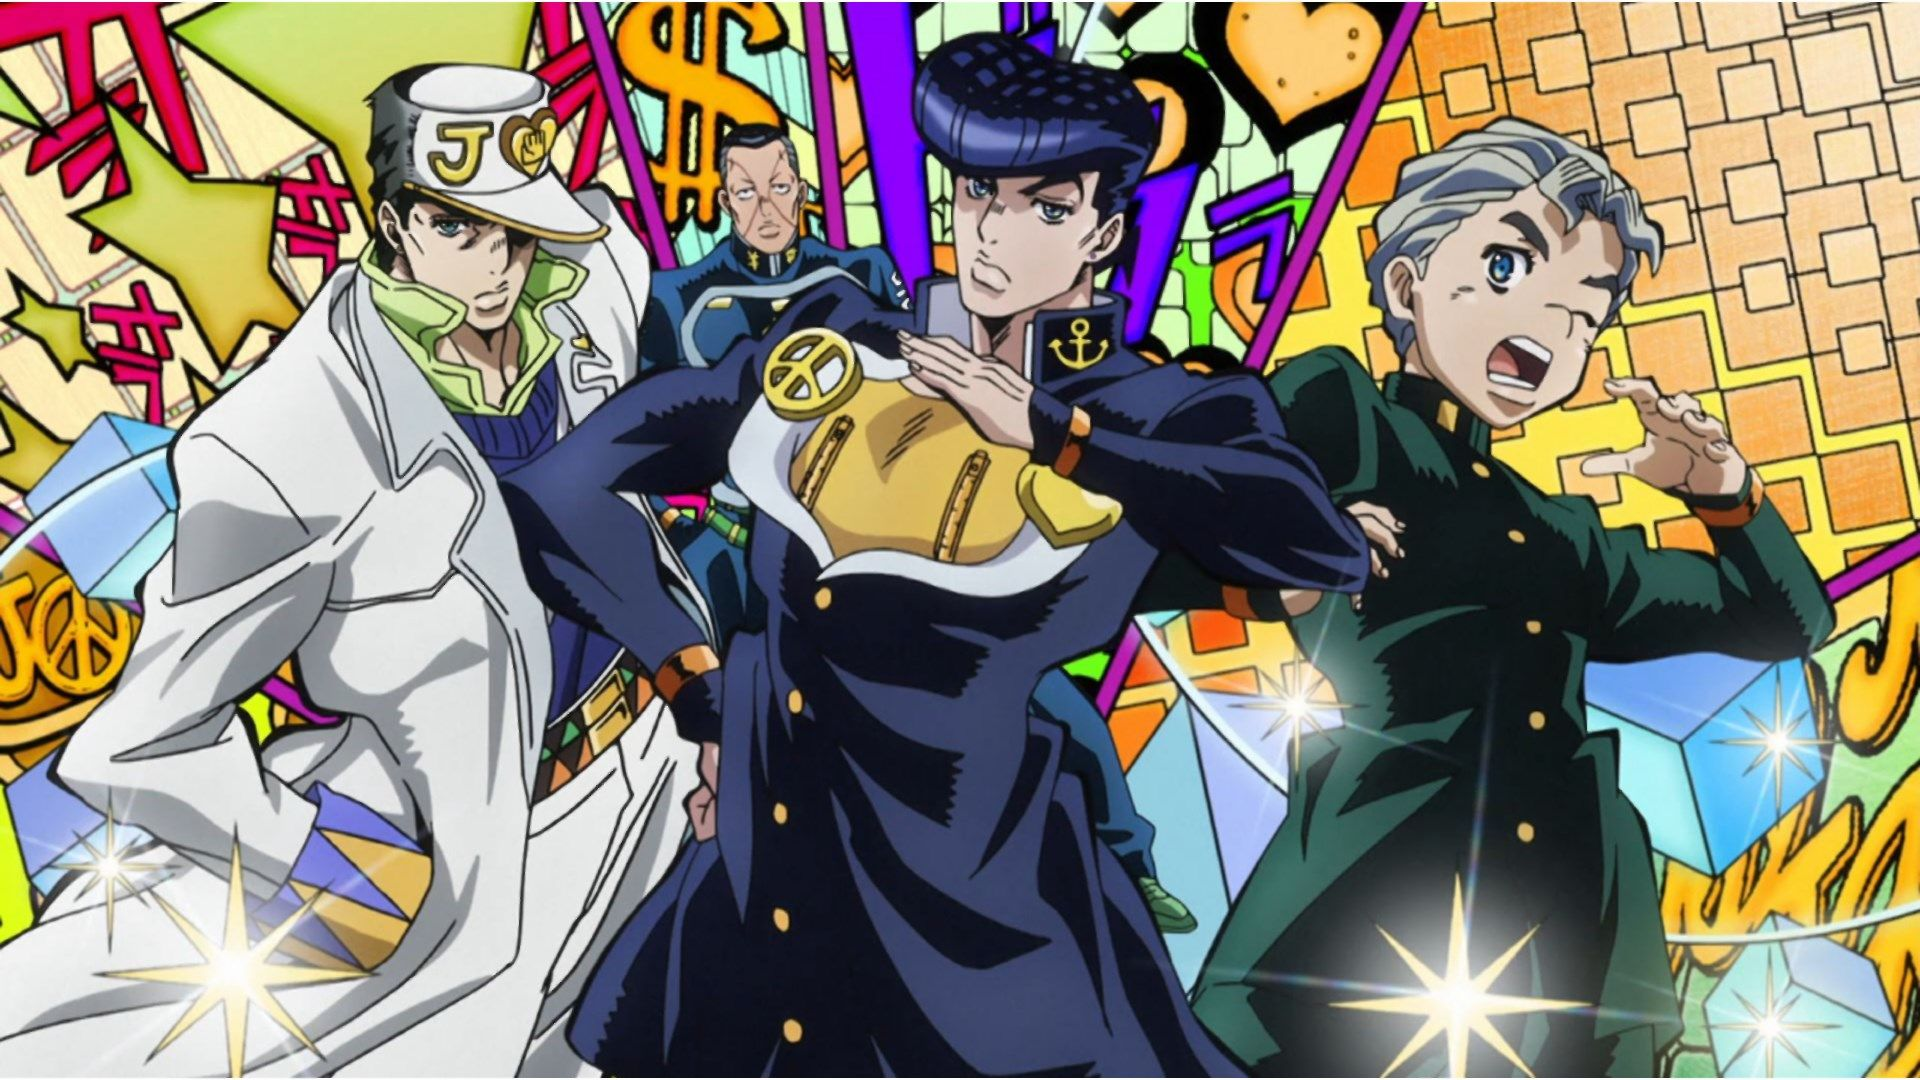 Wallpaper Desktop Jojos Bizarre Adventure Jojos Bizarre